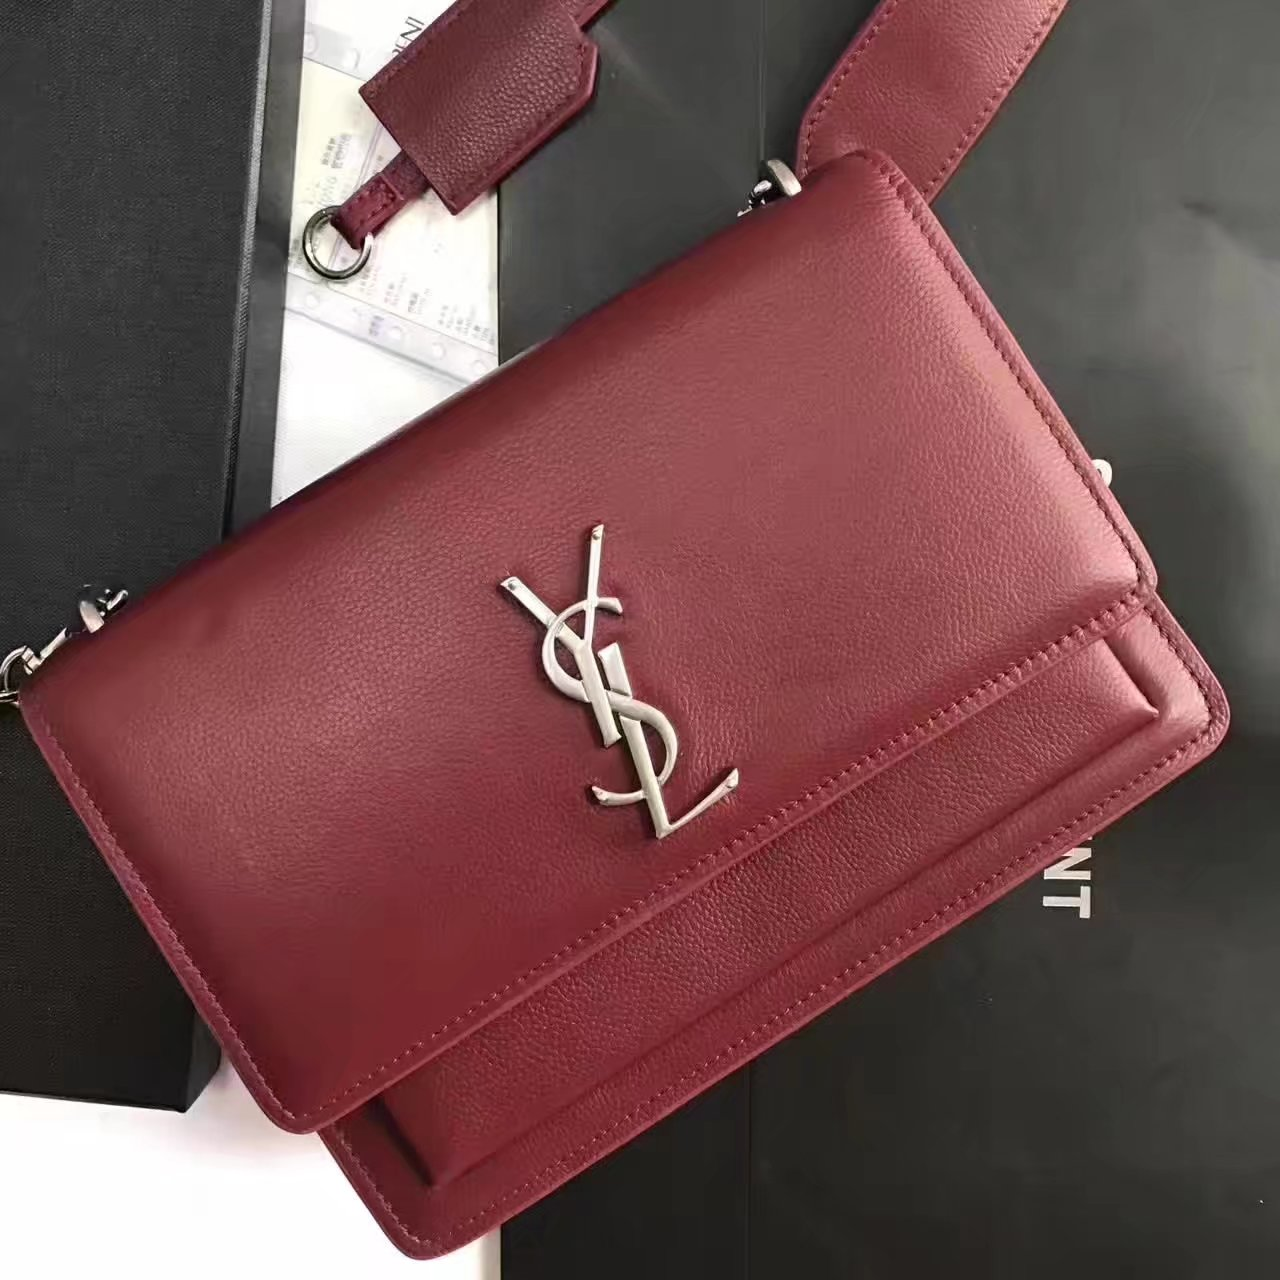 Yves Saint Laurent Sunset Satchel Flap Front Bag In Red Grained Leather